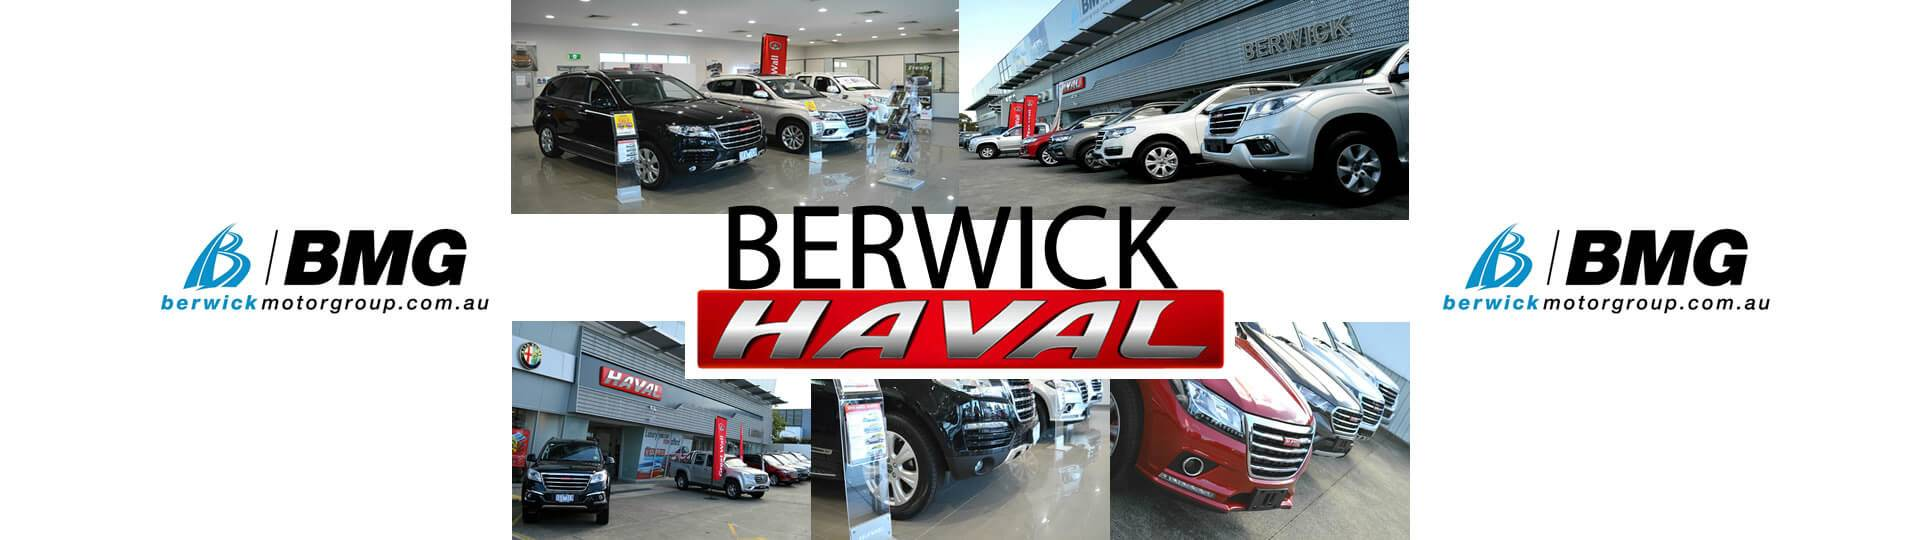 Berwick Haval Showroom